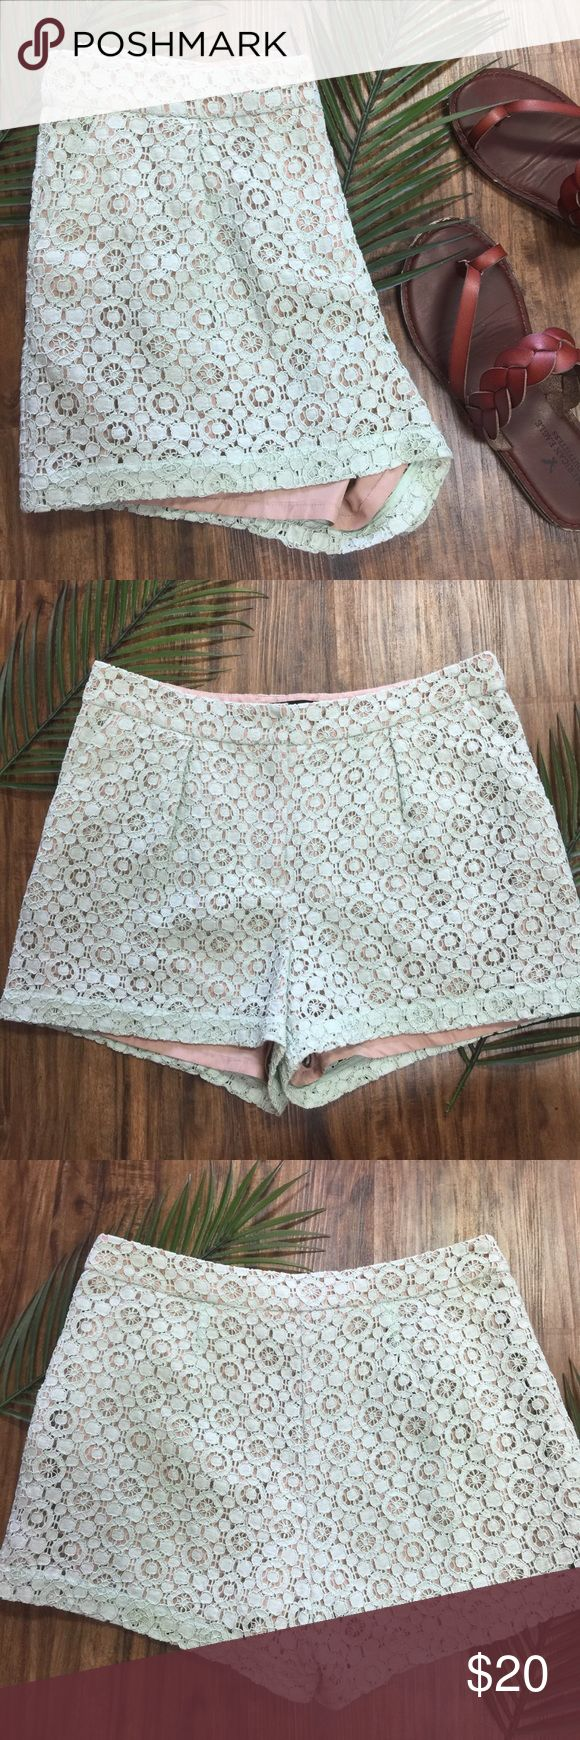 Victoria Beckham For Target Lace Mint Shorts Looks like they have never been worn. These are a beautiful mint color with a tank layer underneath. No trades. Victoria Beckham for Target Shorts